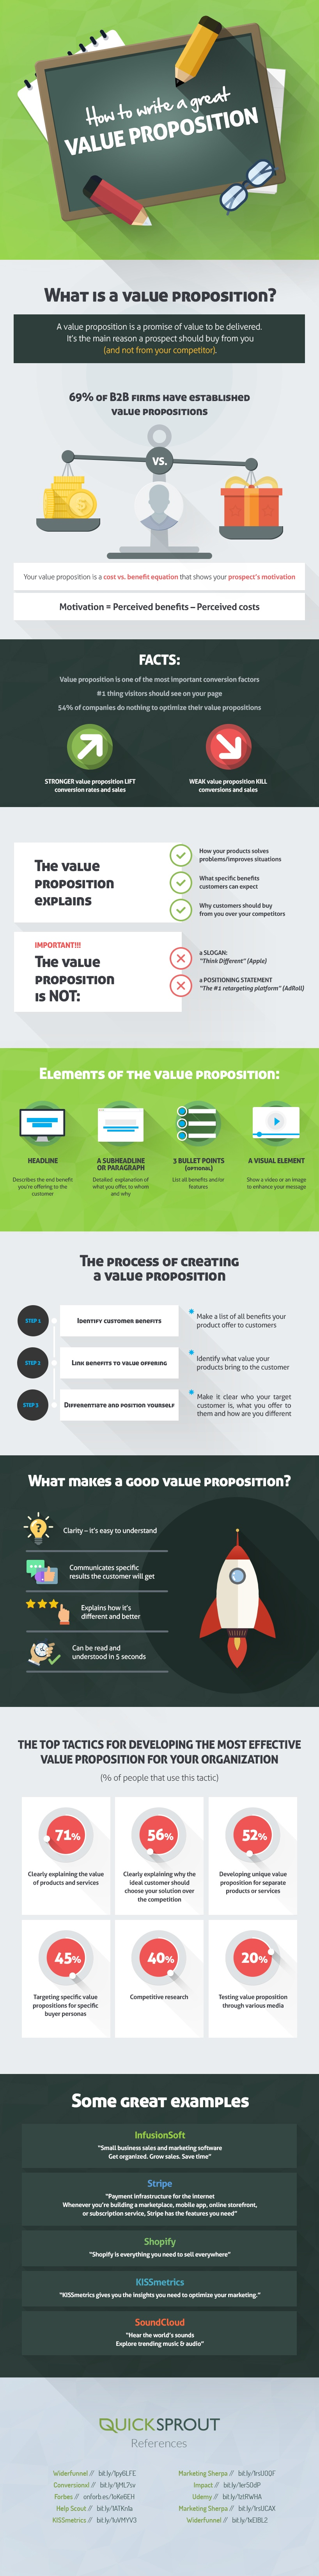 Value_Proposition_Infographic